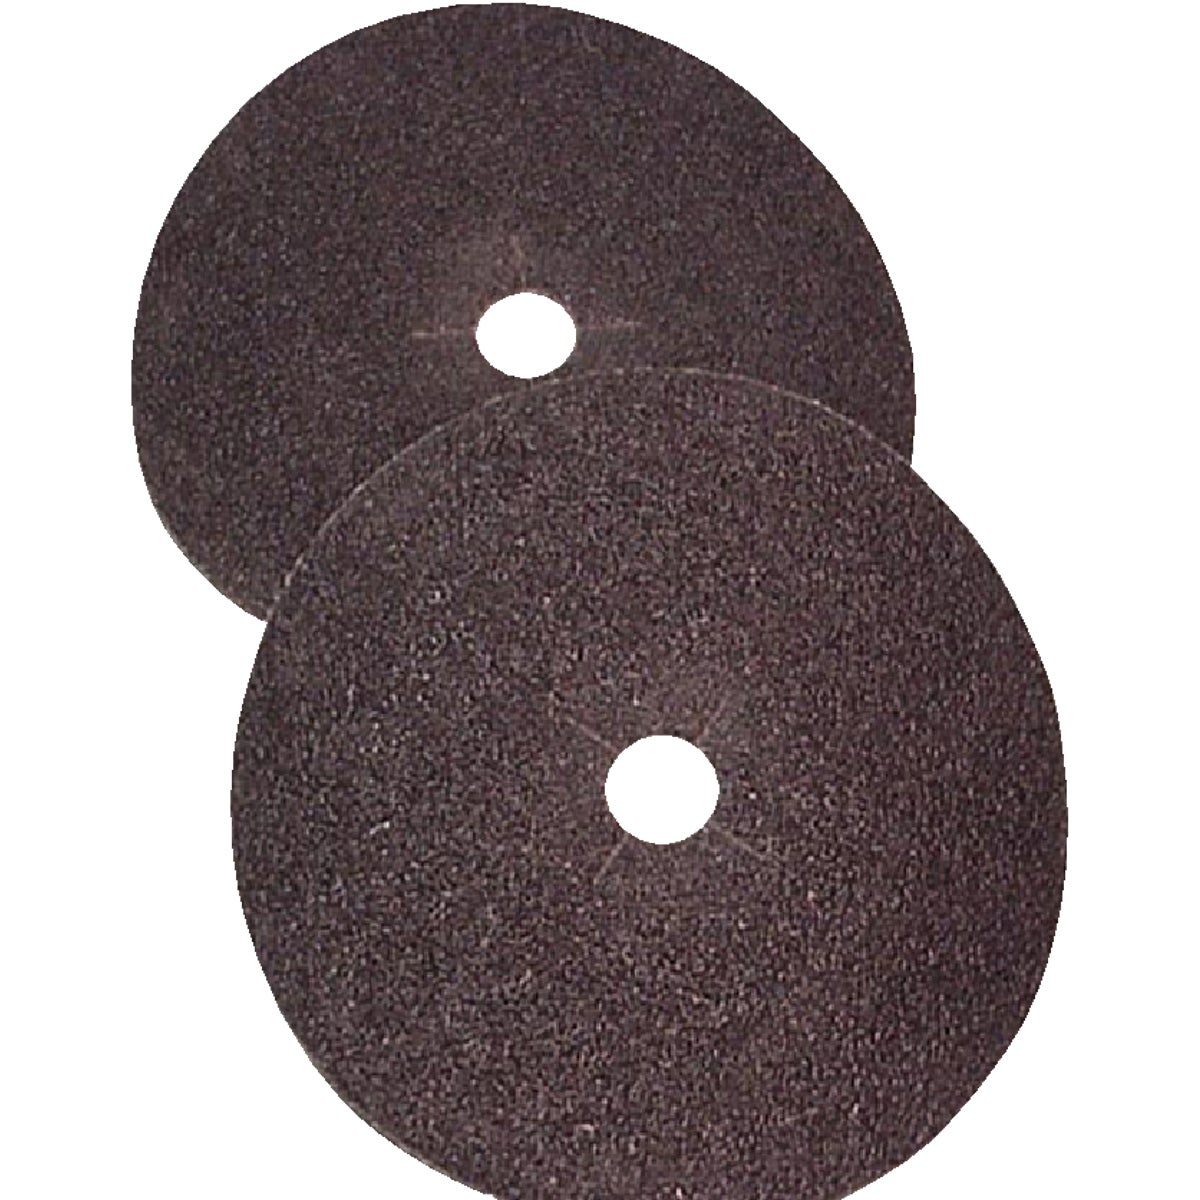 "5"" 80G FLR SANDING DISC - 006-850280 by Virginia Abrasives"